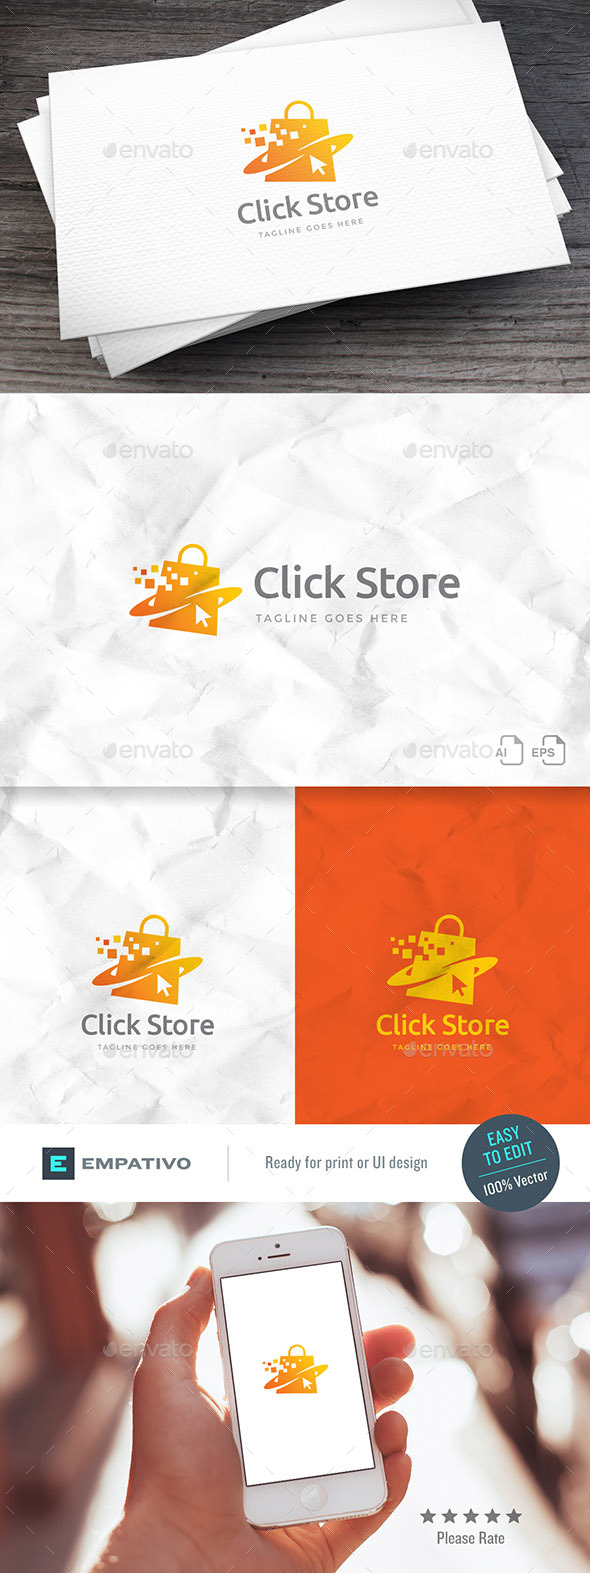 Click Store Logo Template - Objects Logo Templates